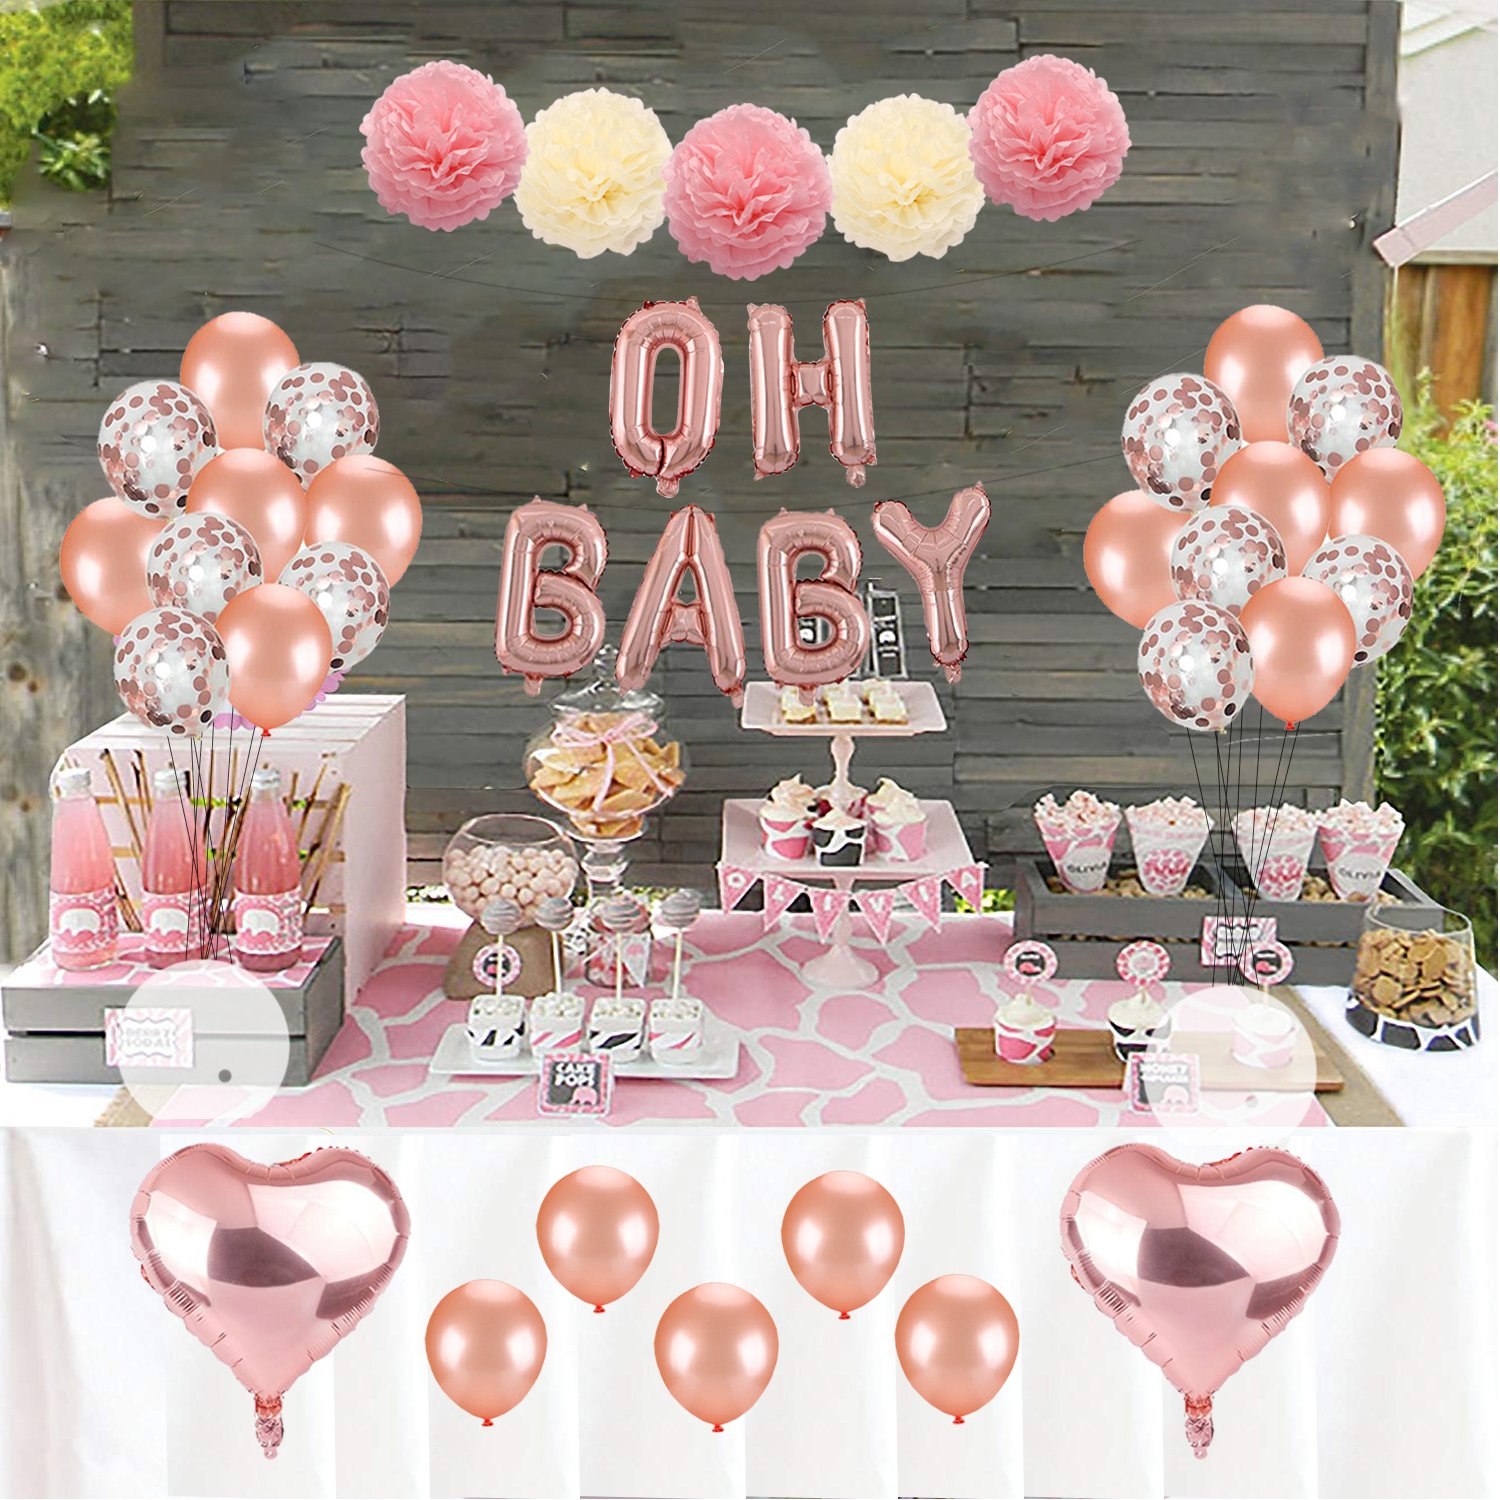 Kwayi Baby Shower Decoration Set Rose Gold Theme Baby Shower Decoration With Oh Baby Banner Rose Gold Balloon And Tissue Paper Pom Poms Toal 35pcs